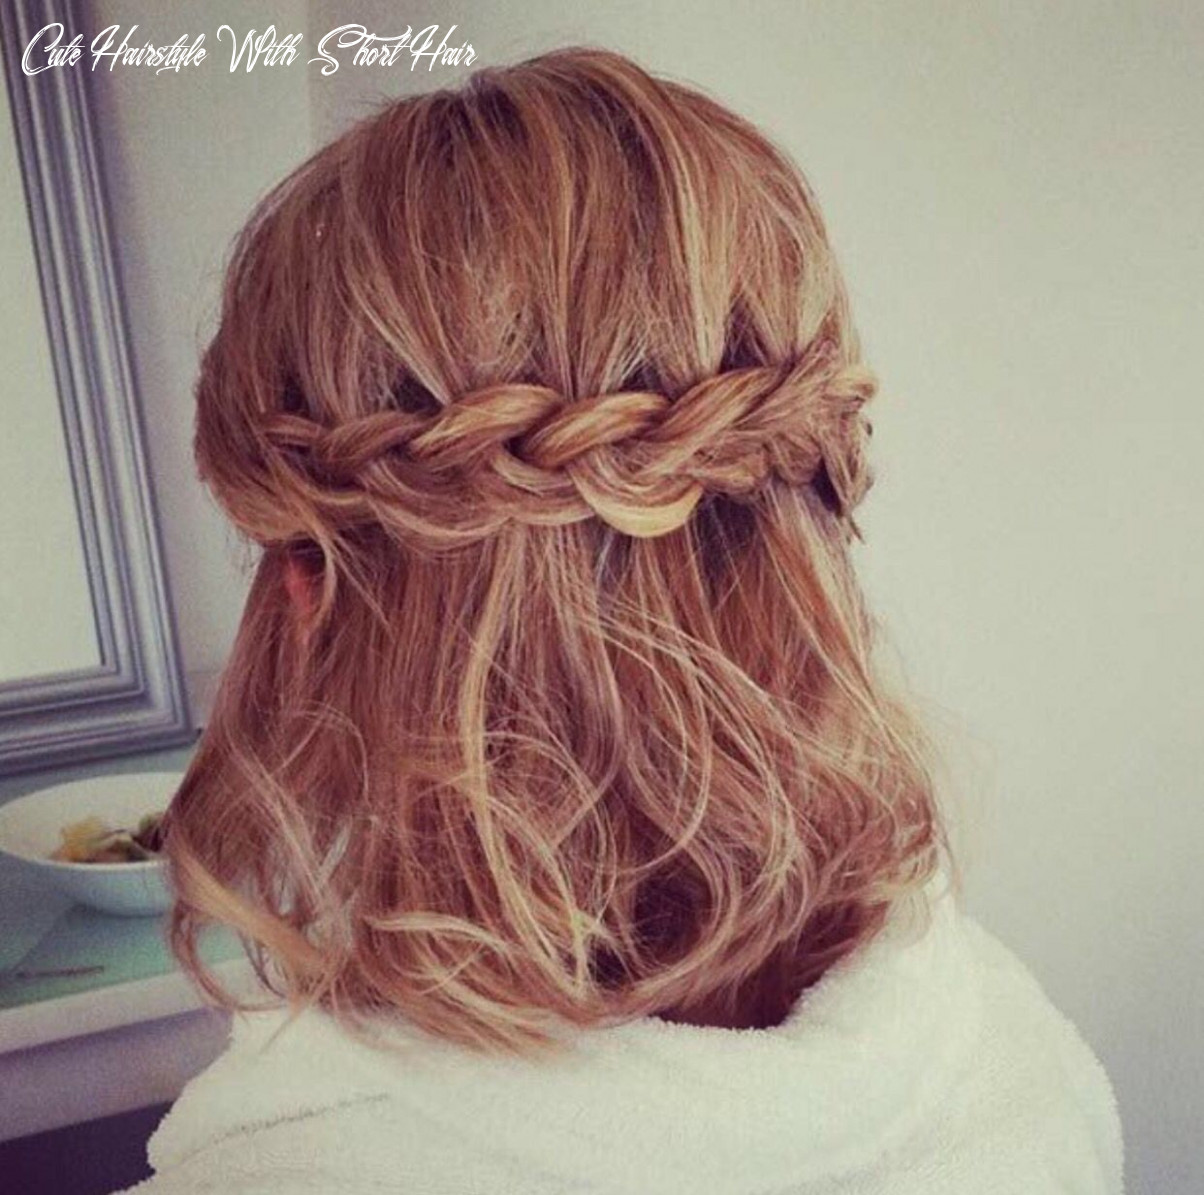 Pin by y on hair | prom hairstyles for short hair, hair styles